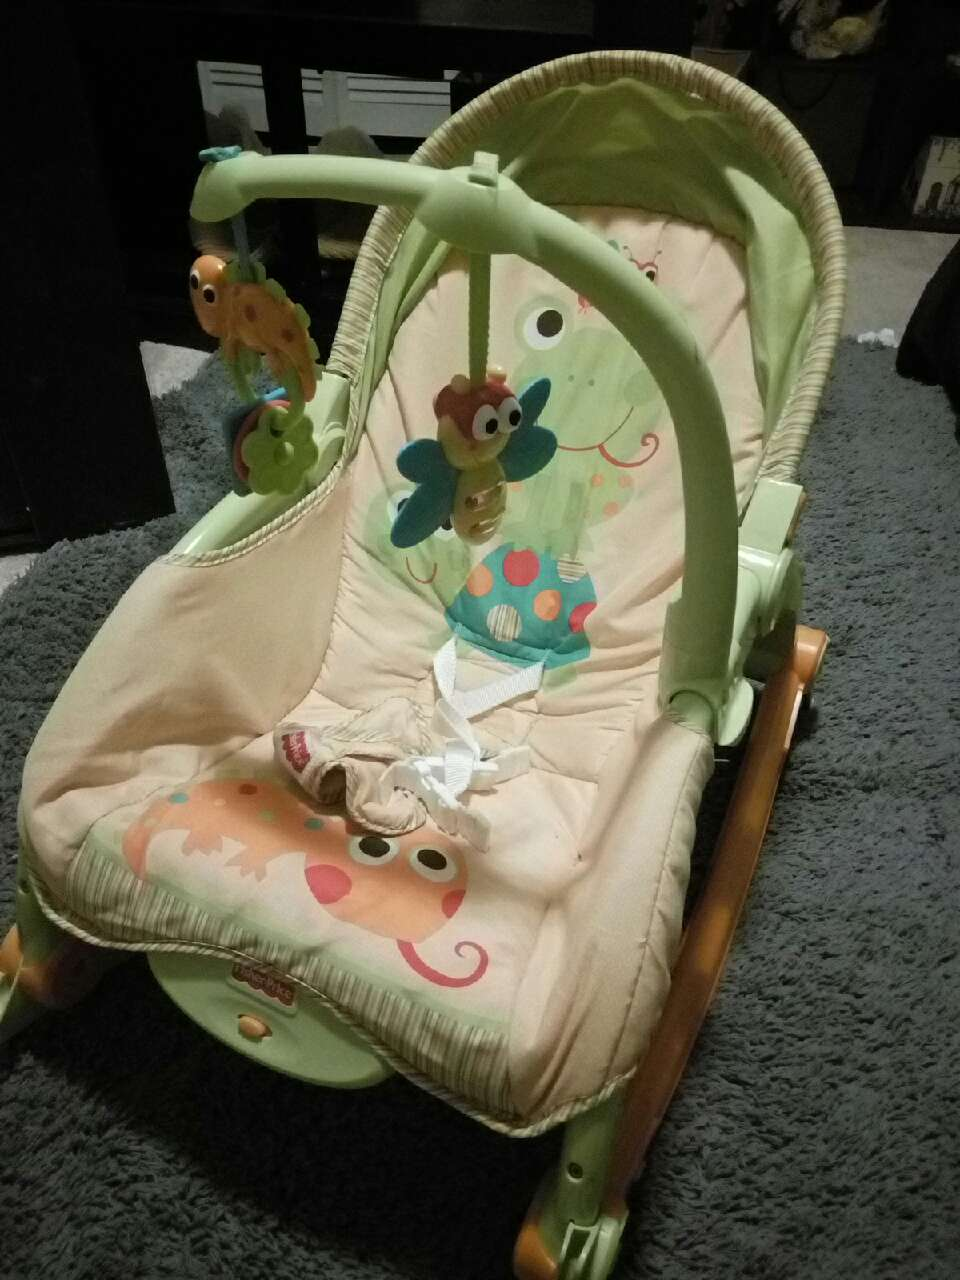 ... Ohio West Lebanon Baby and Child Fisher Price Vibrating Rocking Chair